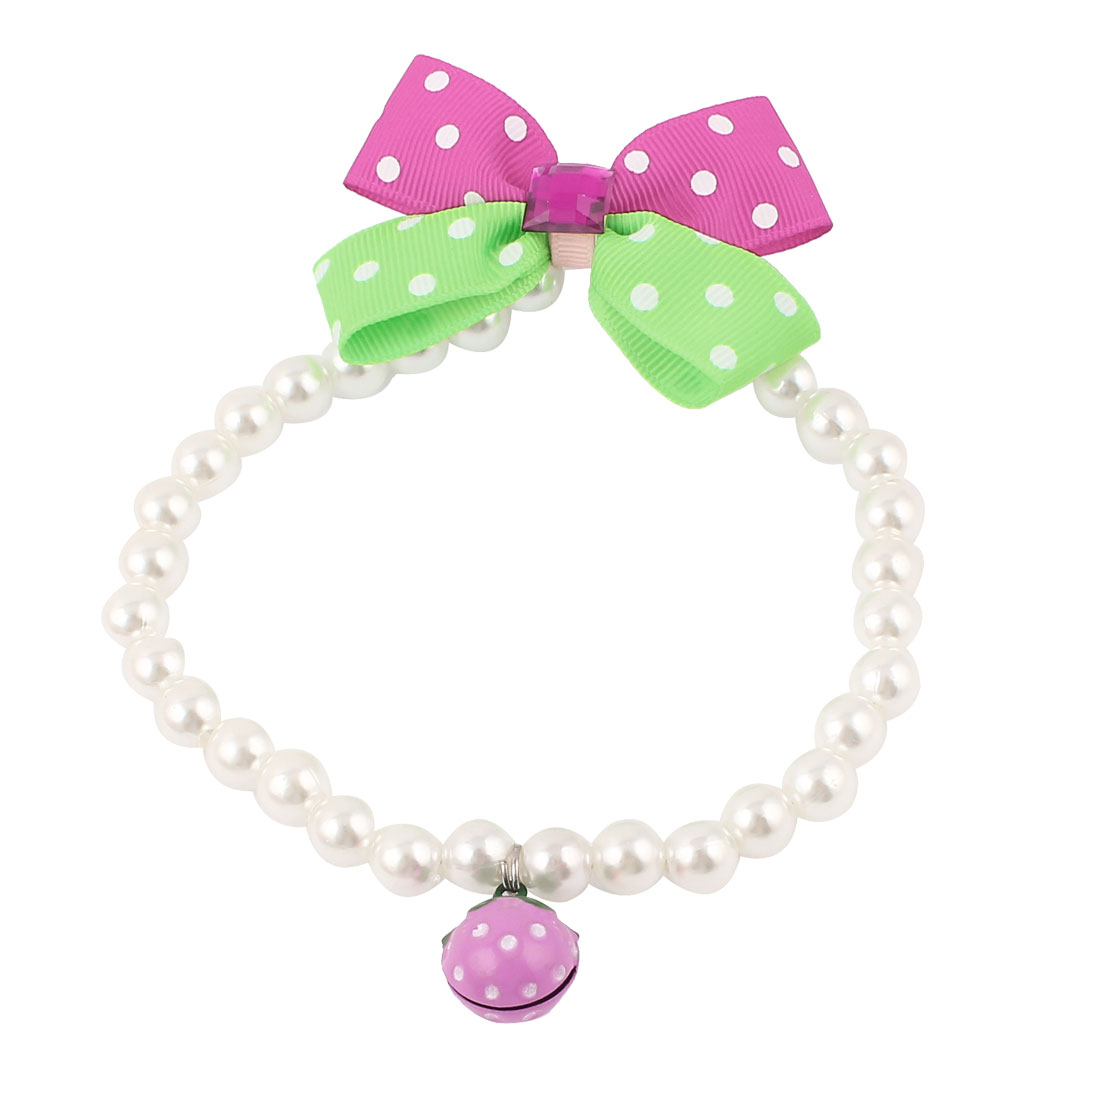 Metal Bell Pendant Bowknot Accent Pet Plastic Beads Pearls Collar Necklace White Green Fuchsia M